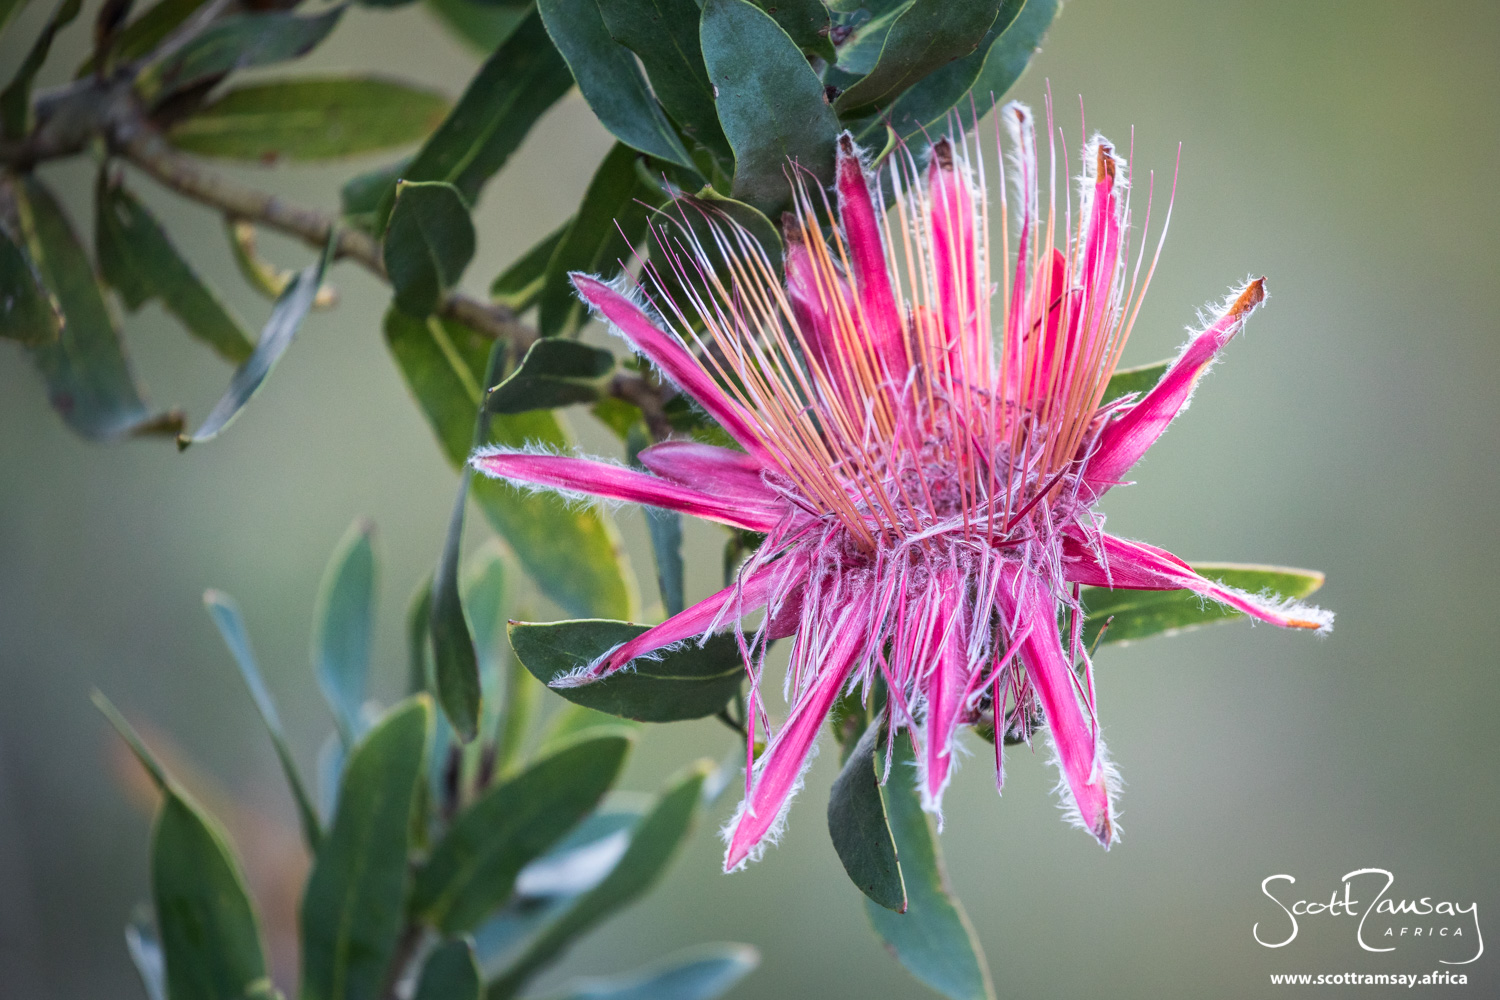 Protea species, an impossible hue of crimson and pink.